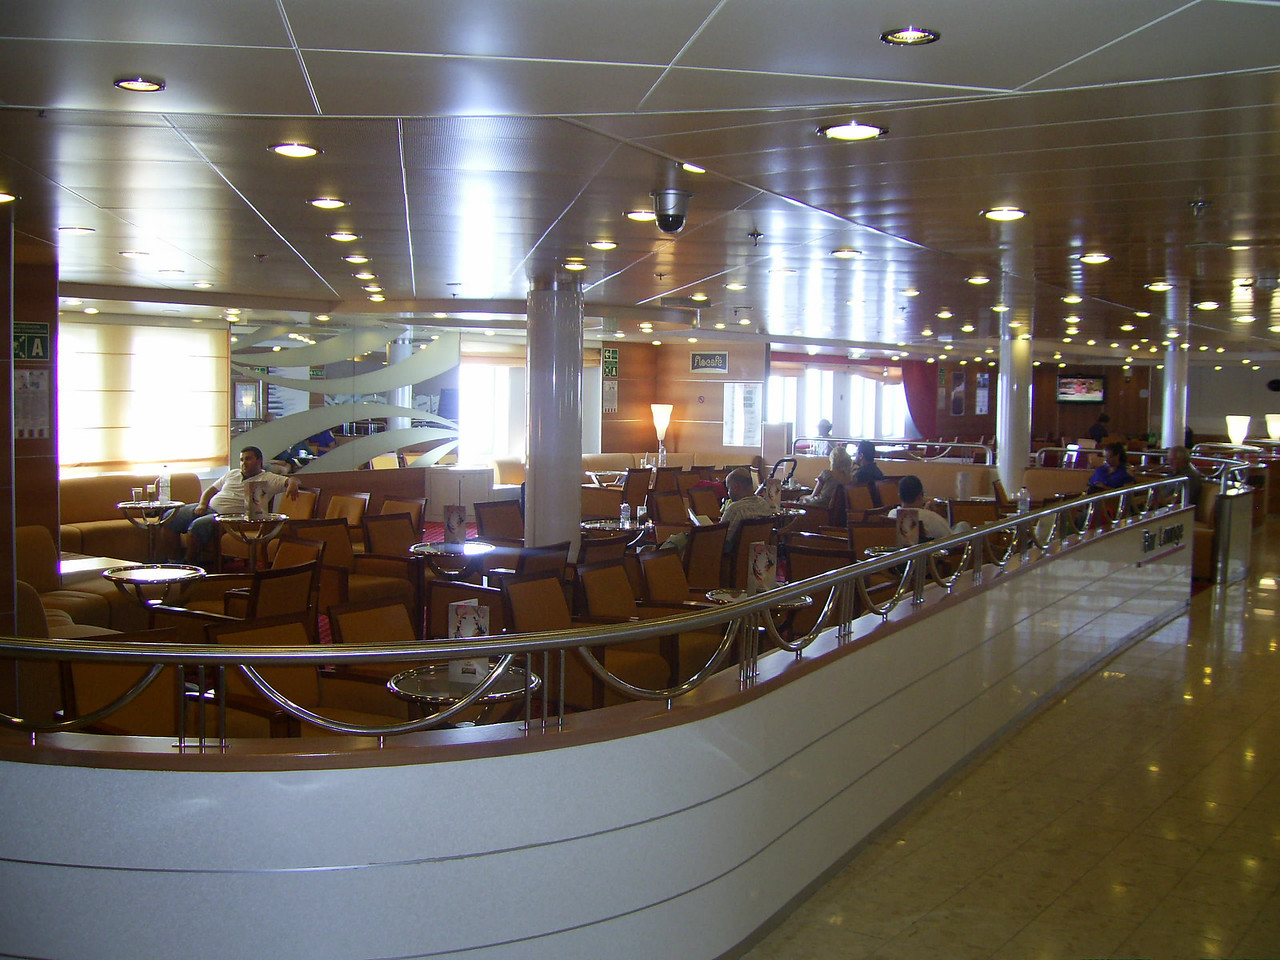 2012 - On board SUPERFAST II : Bar lounge.